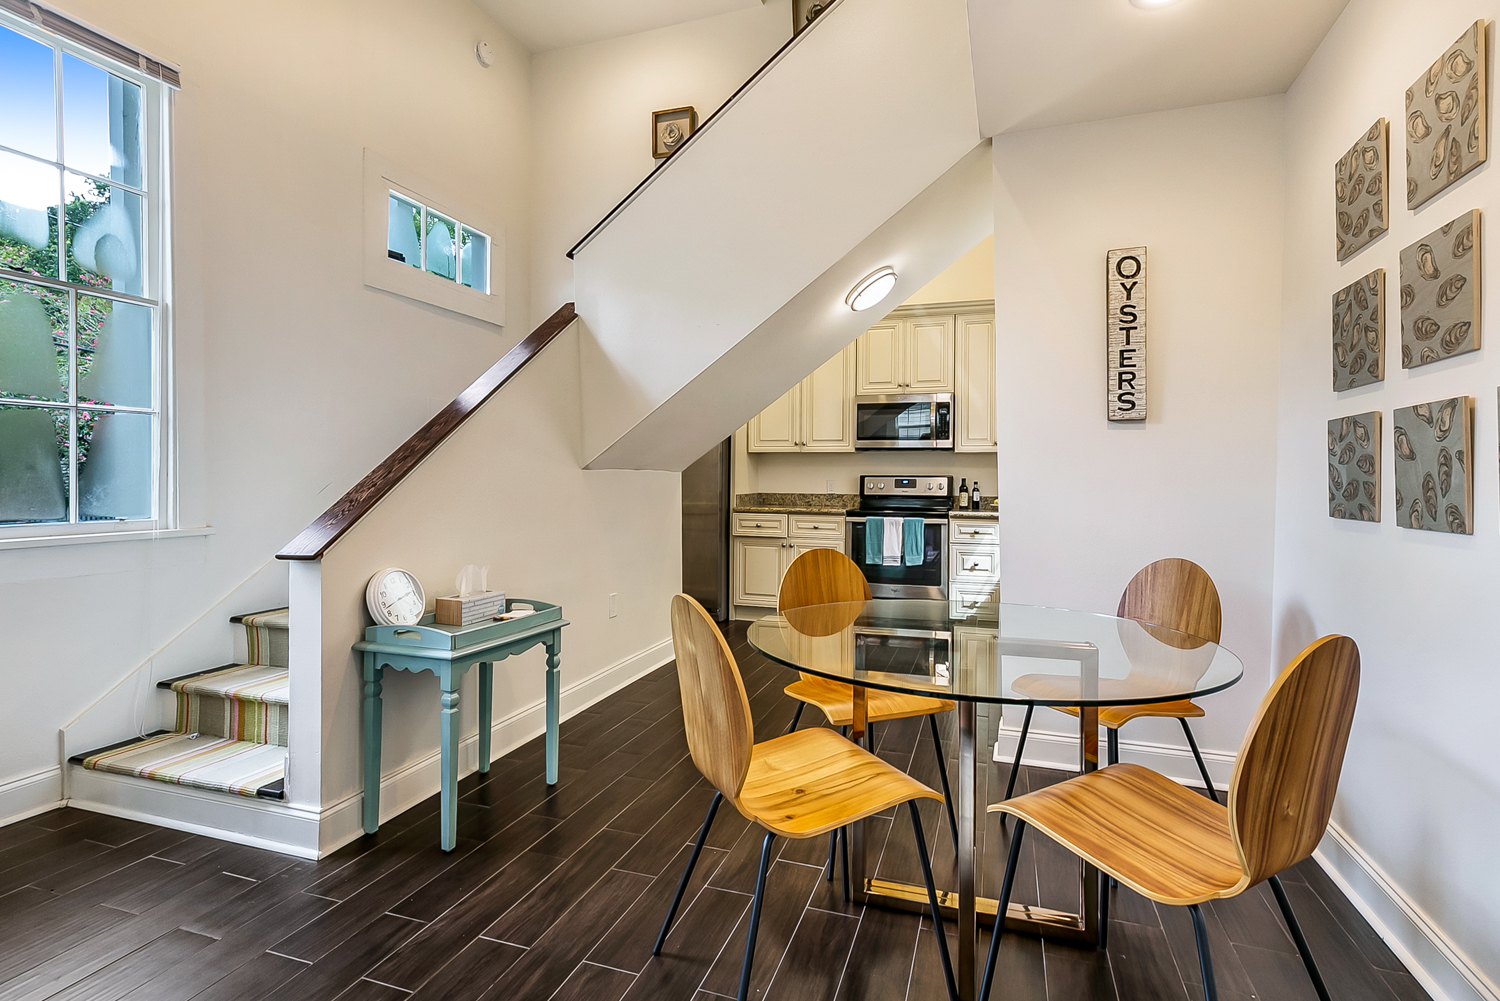 Garden District, Apartment, 1 beds, 1.0 baths, $2800 per month New Orleans Rental - devie image_5